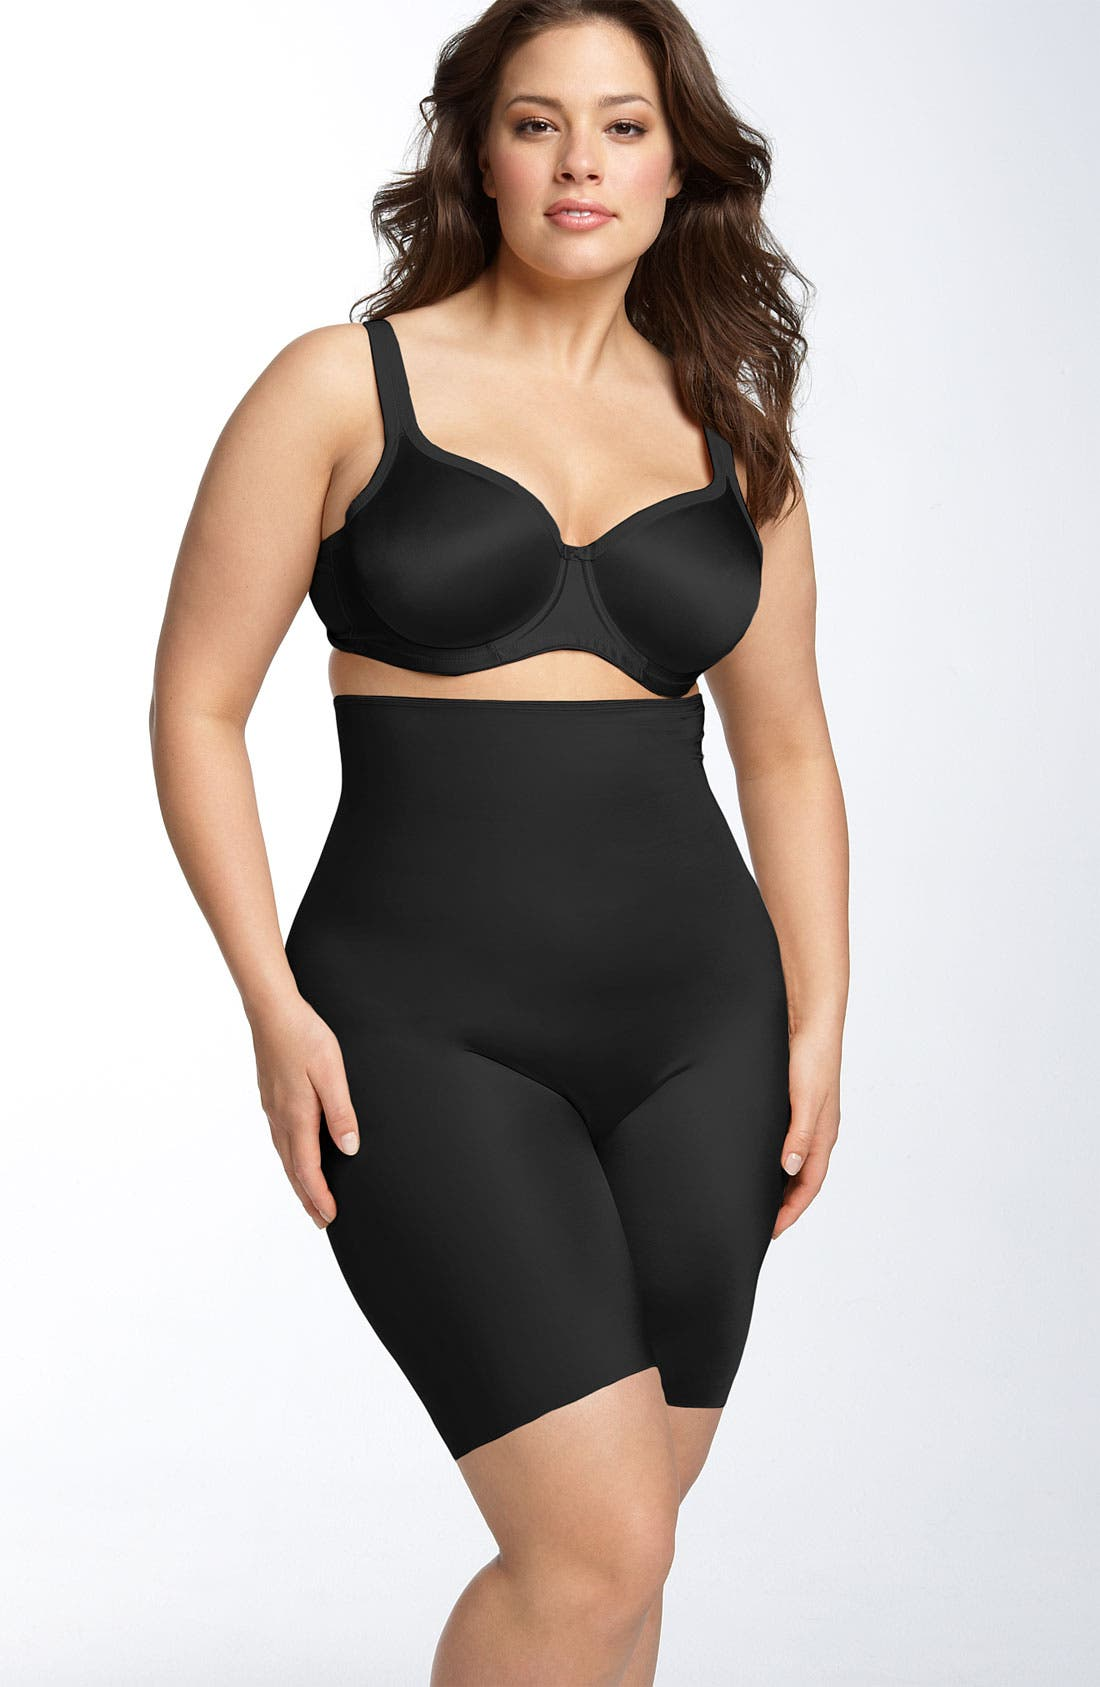 Main Image - SPANX® 'Slimplicity' High Waist Shaper (Plus Size)